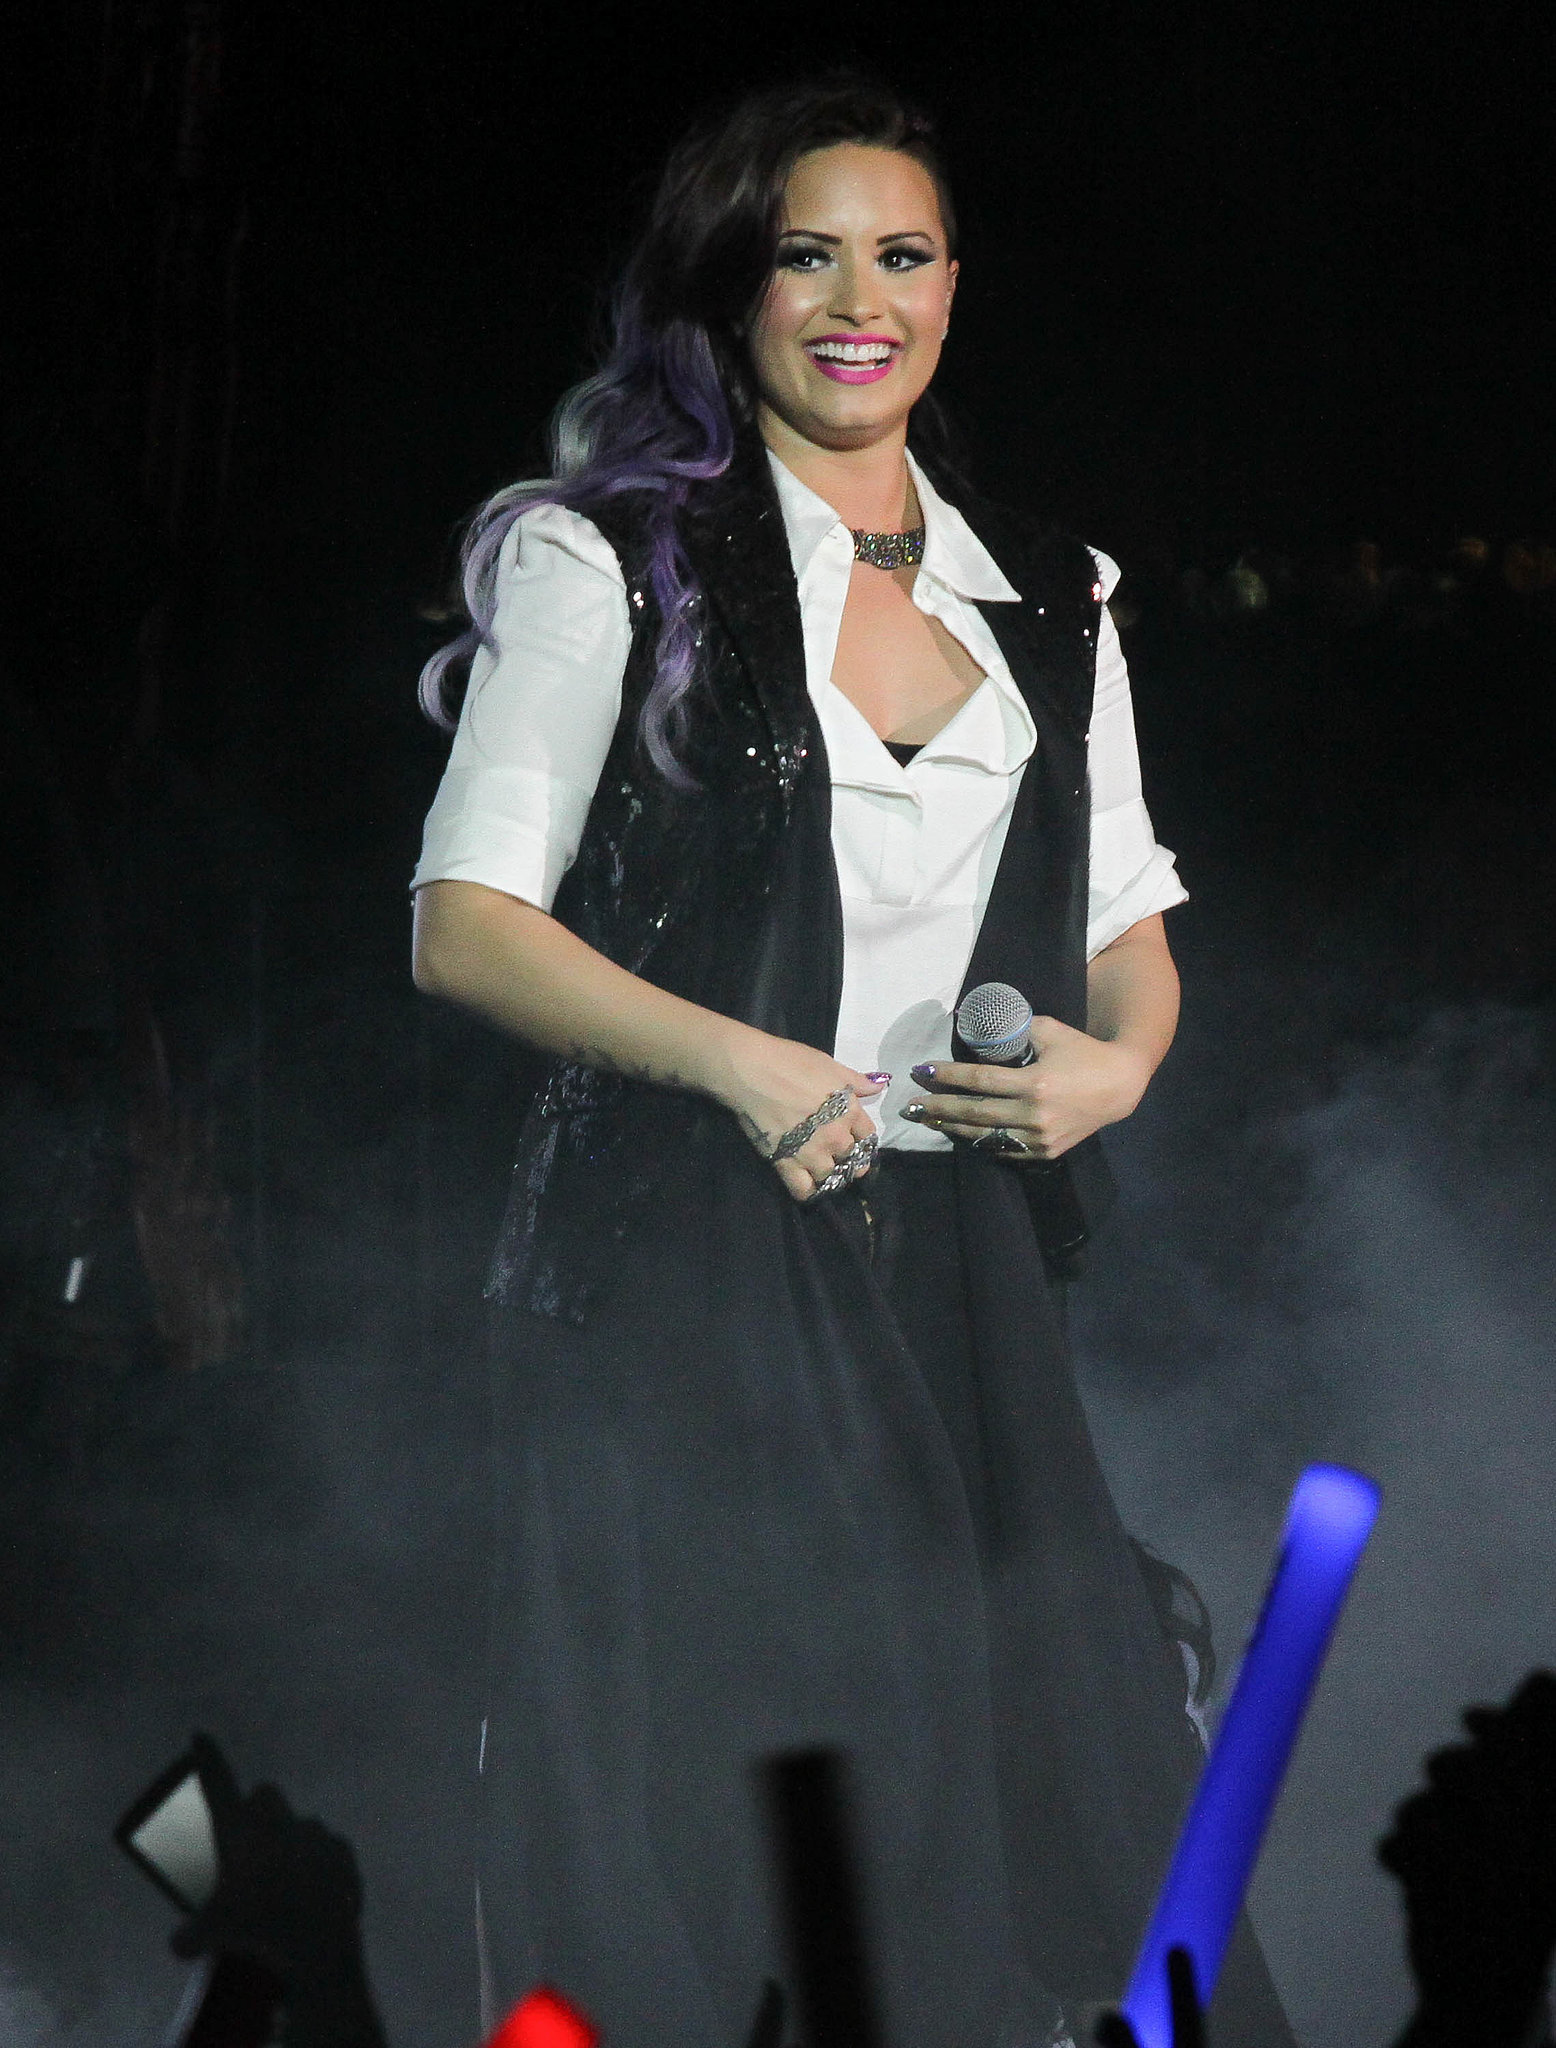 Demi Lovato performed at NYC's Dance on the Pier gay pride event on Sunday.